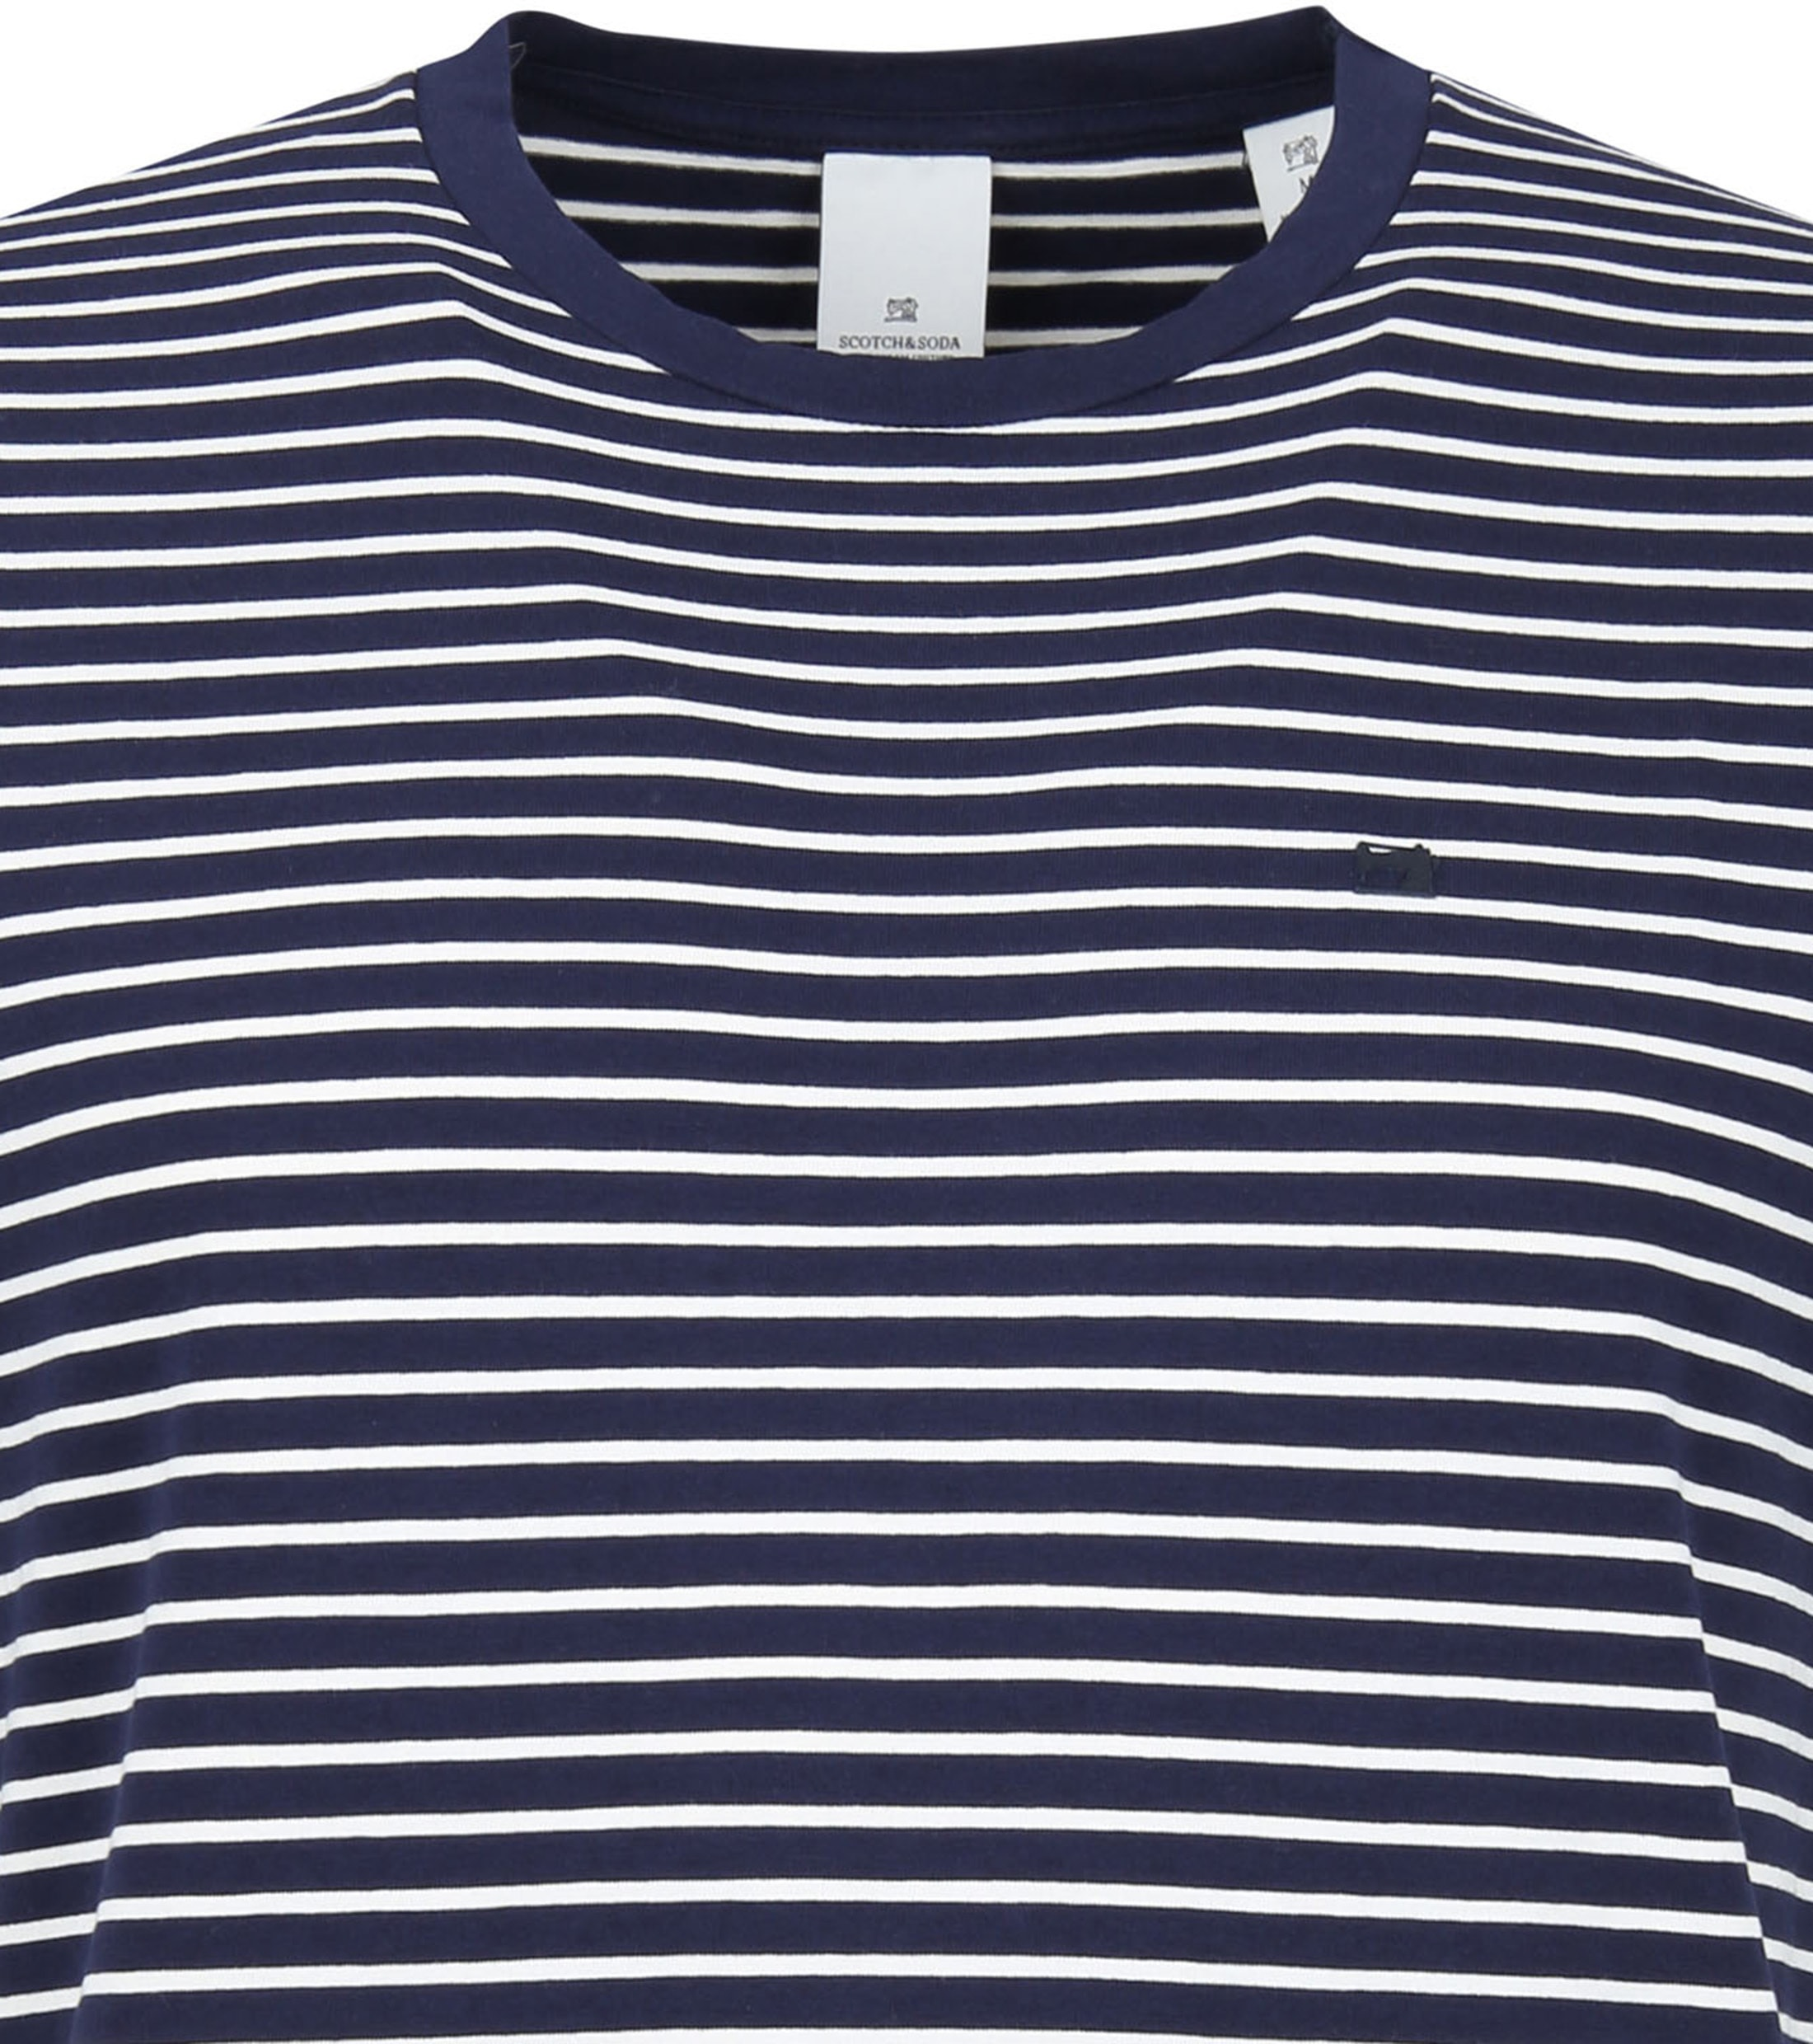 Scotch and Soda T-shirt Navy Strepen foto 1